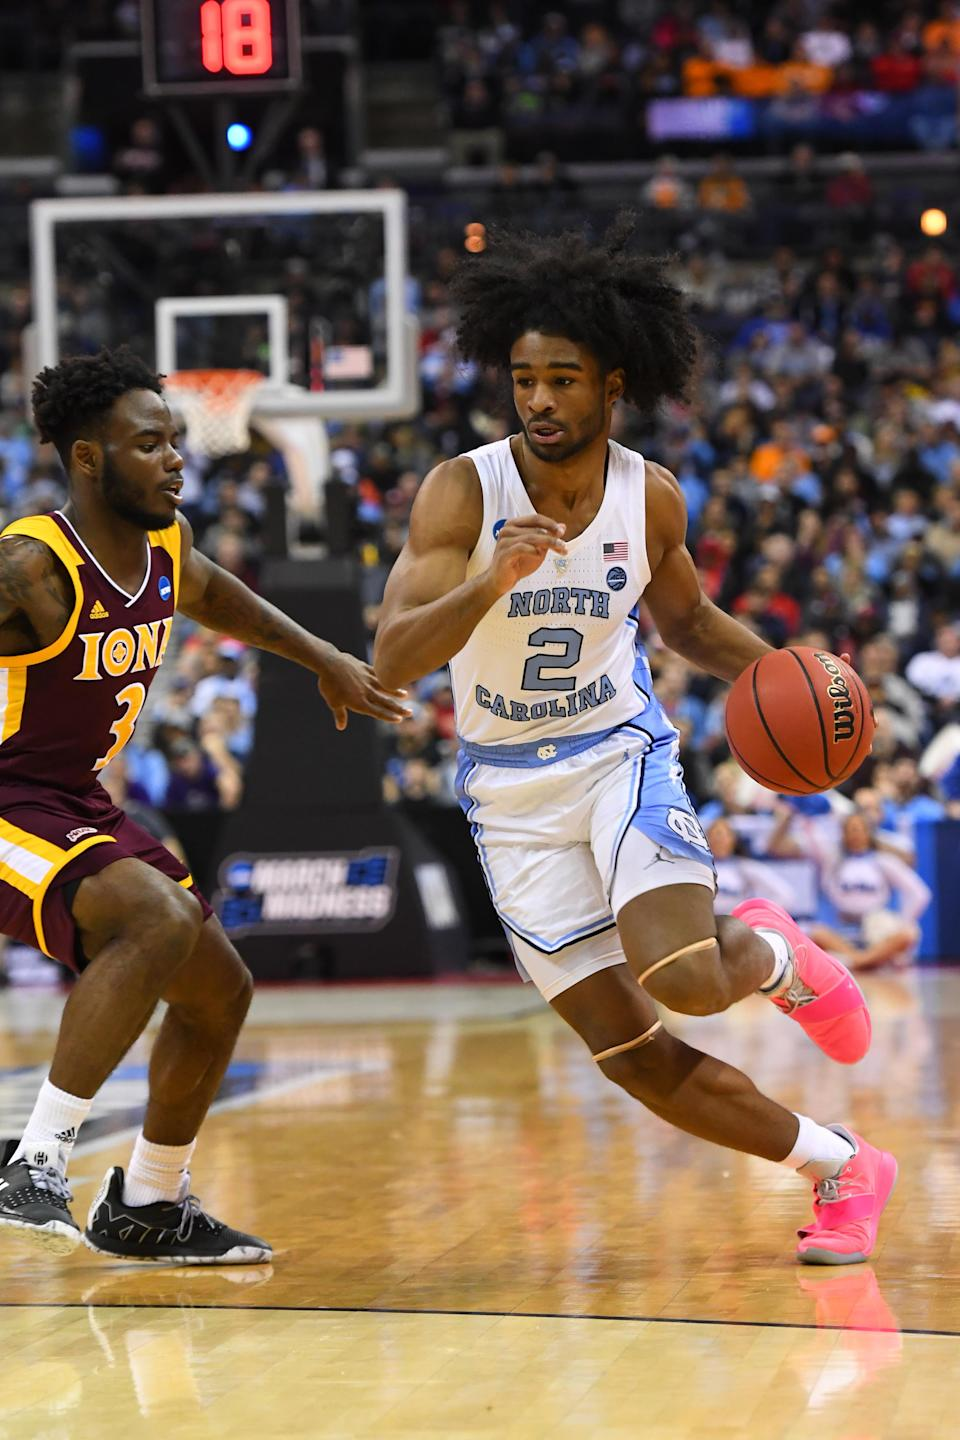 <p>Coby White #2 of the North Carolina Tar Heels drives to the basket against Asante Gist #3 of the Iona Gaels in the first round of the 2019 NCAA Men's Basketball Tournament held at Nationwide Arena on March 22, 2019 in Columbus, Ohio. (Photo by Jamie Schwaberow/NCAA Photos via Getty Images) </p>